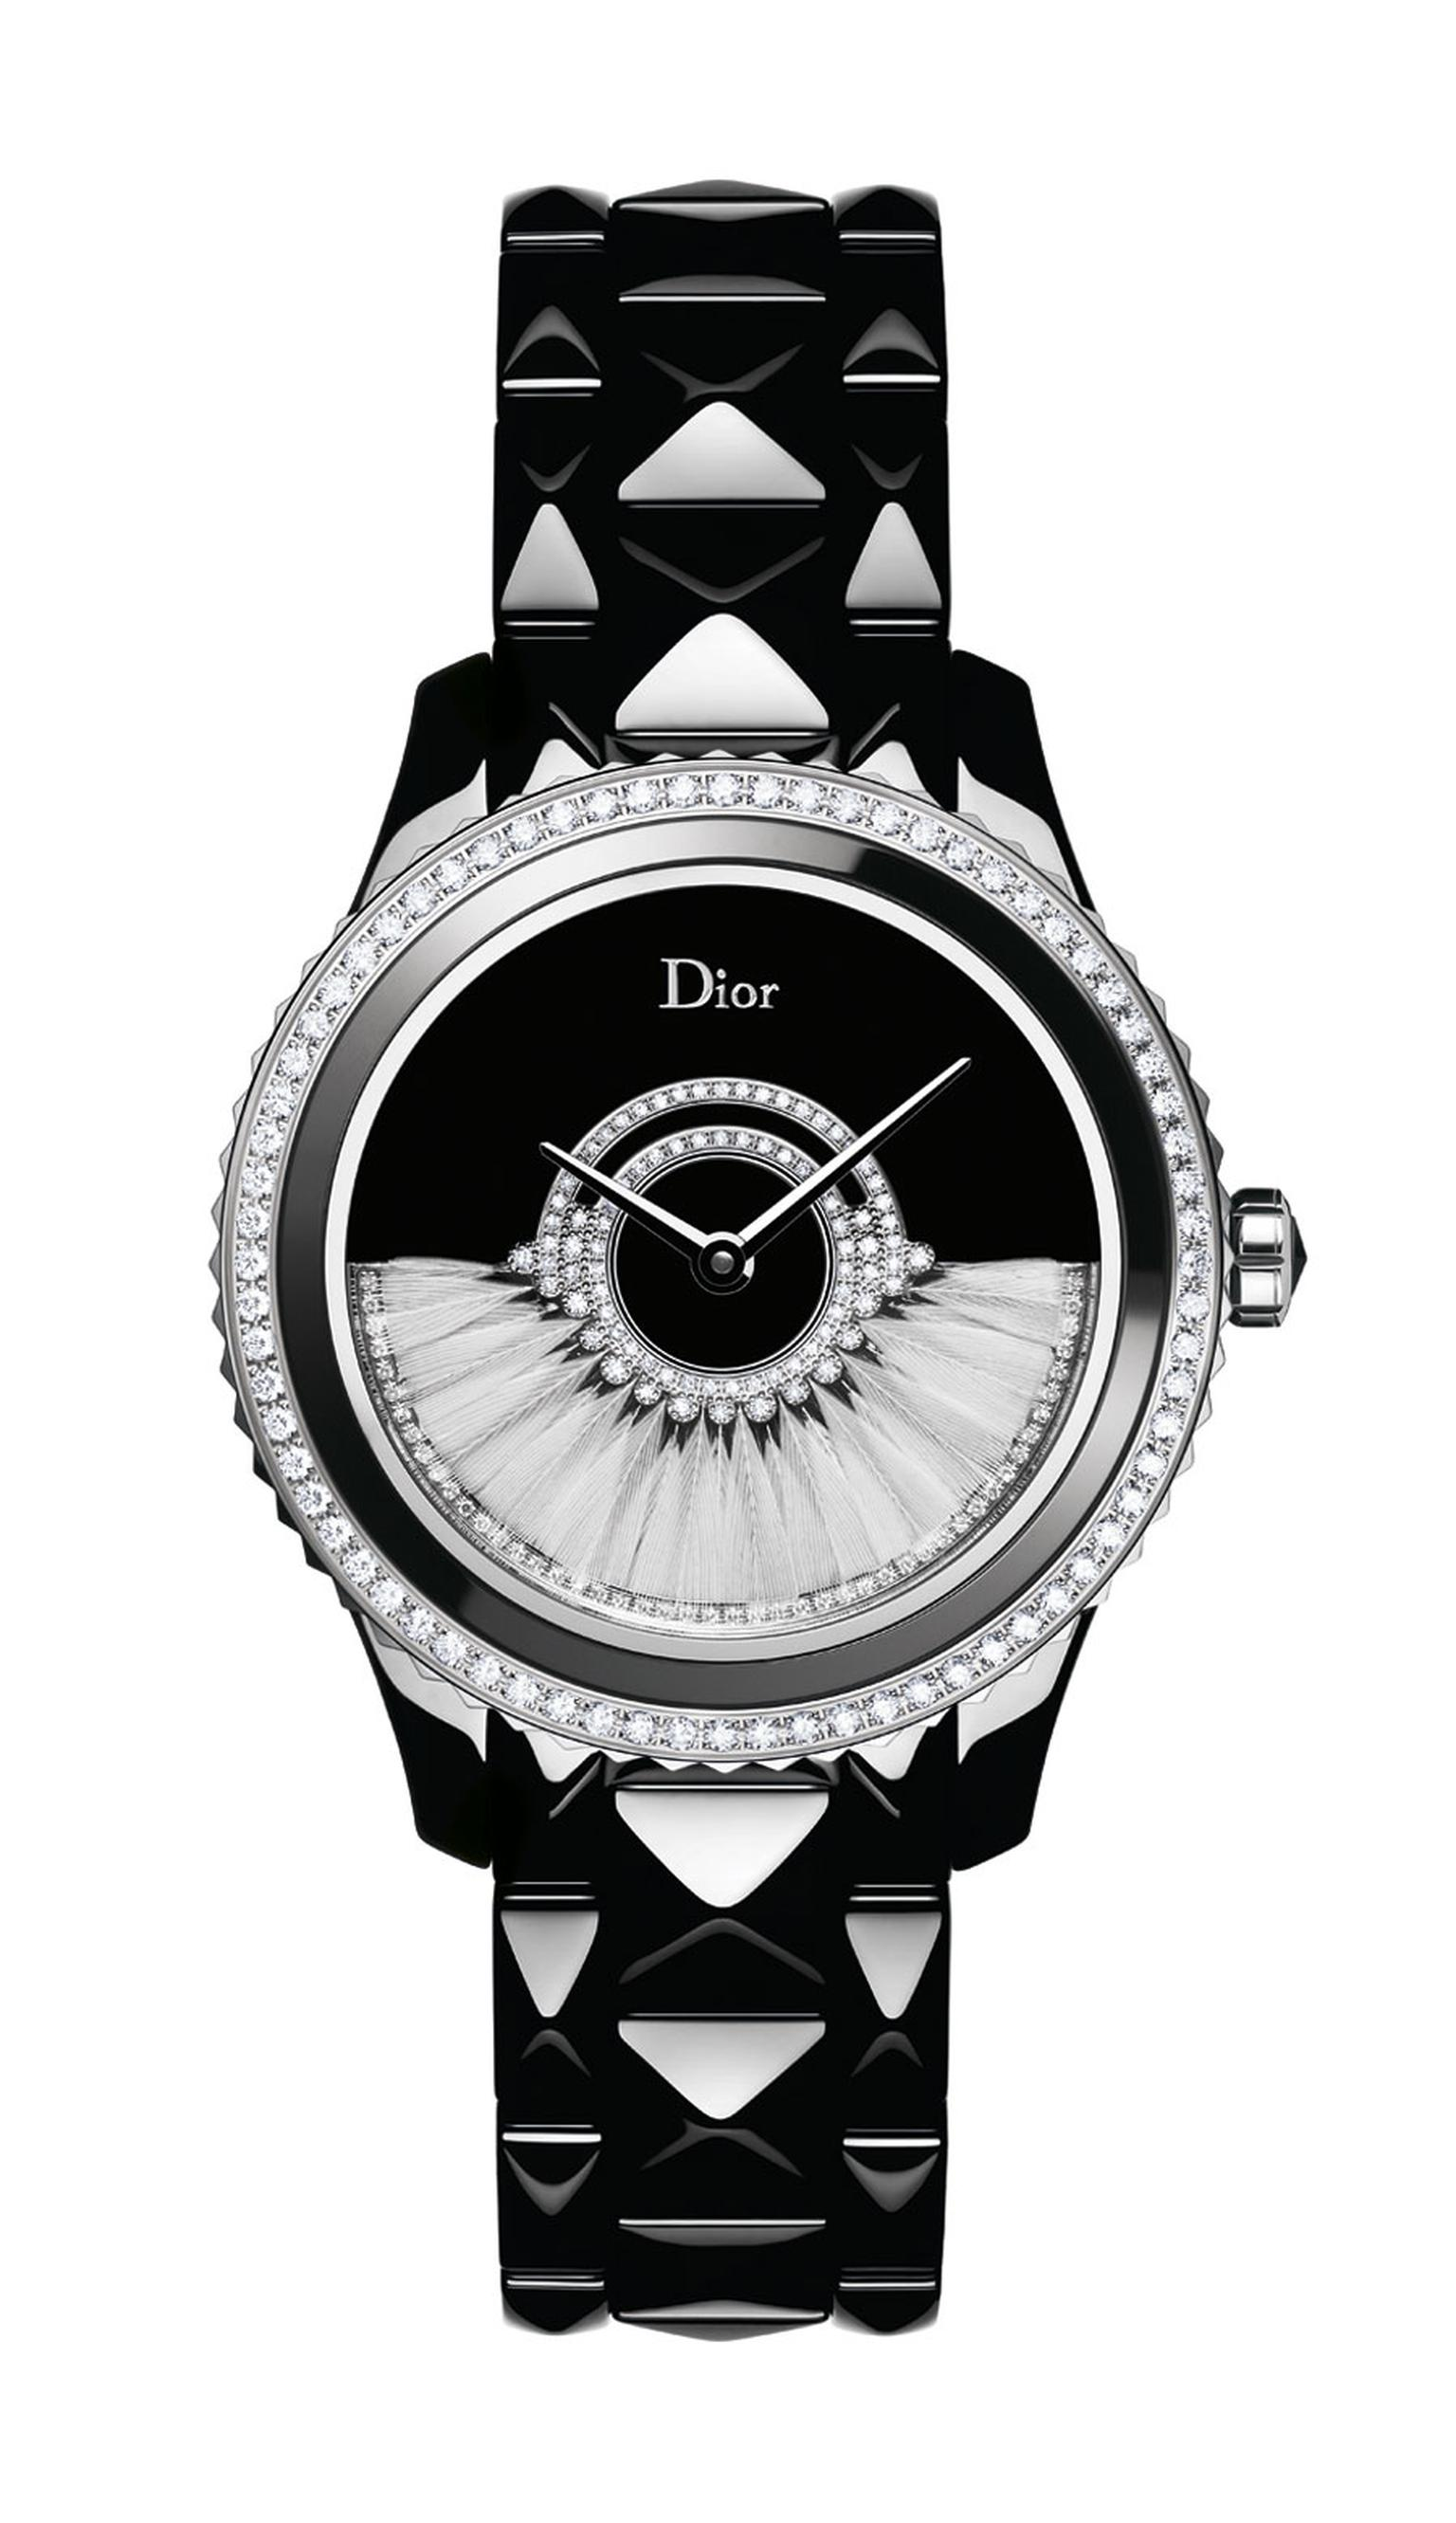 DIOR-VIII-GRAND-BAL-PLUMES-MODEL-BLACK-38mm